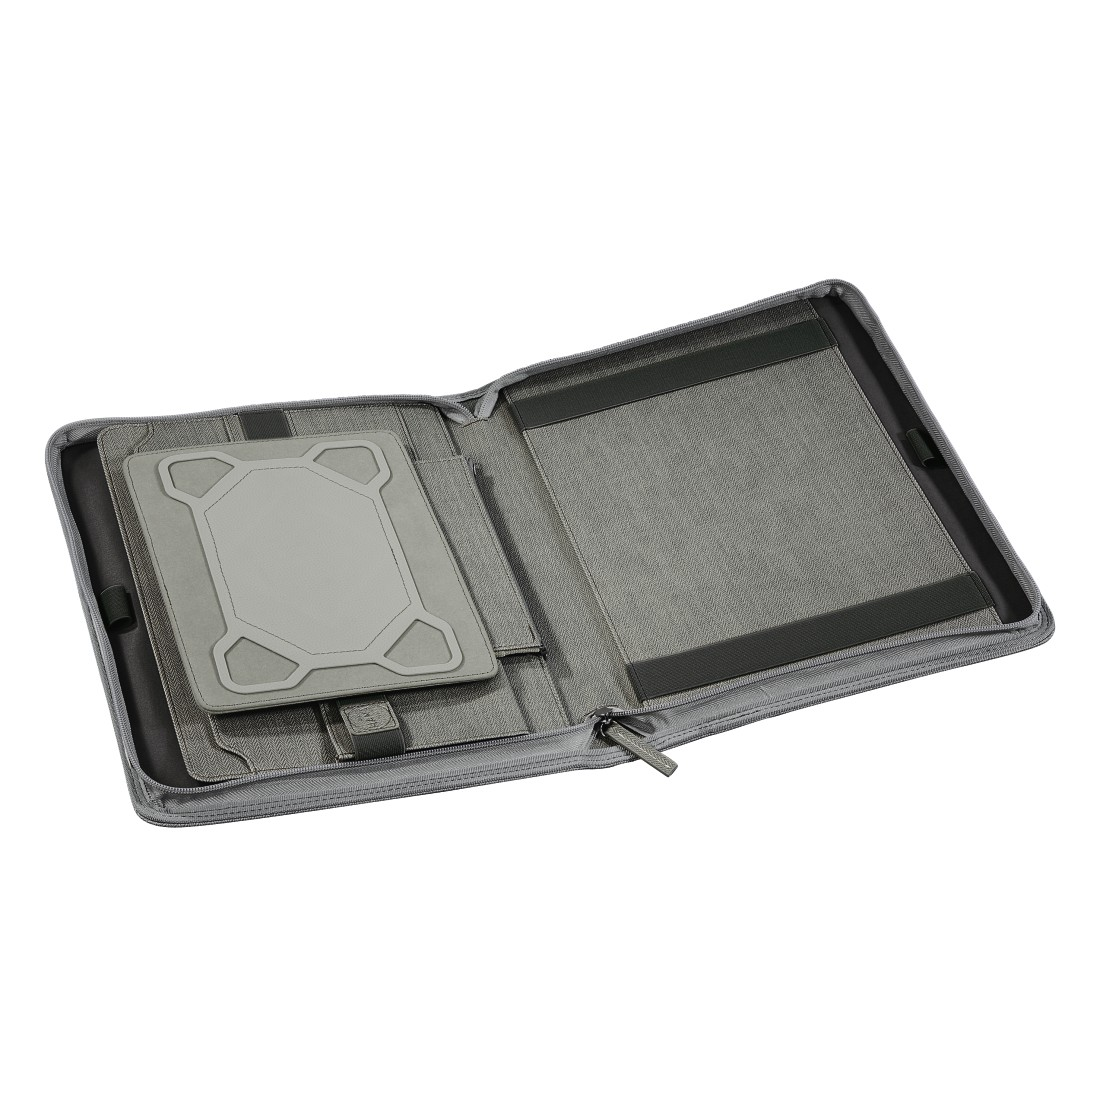 dex4 High-Res Detail 4 - Hama est. 1923, Hannover Tablet Organizer A4, light grey